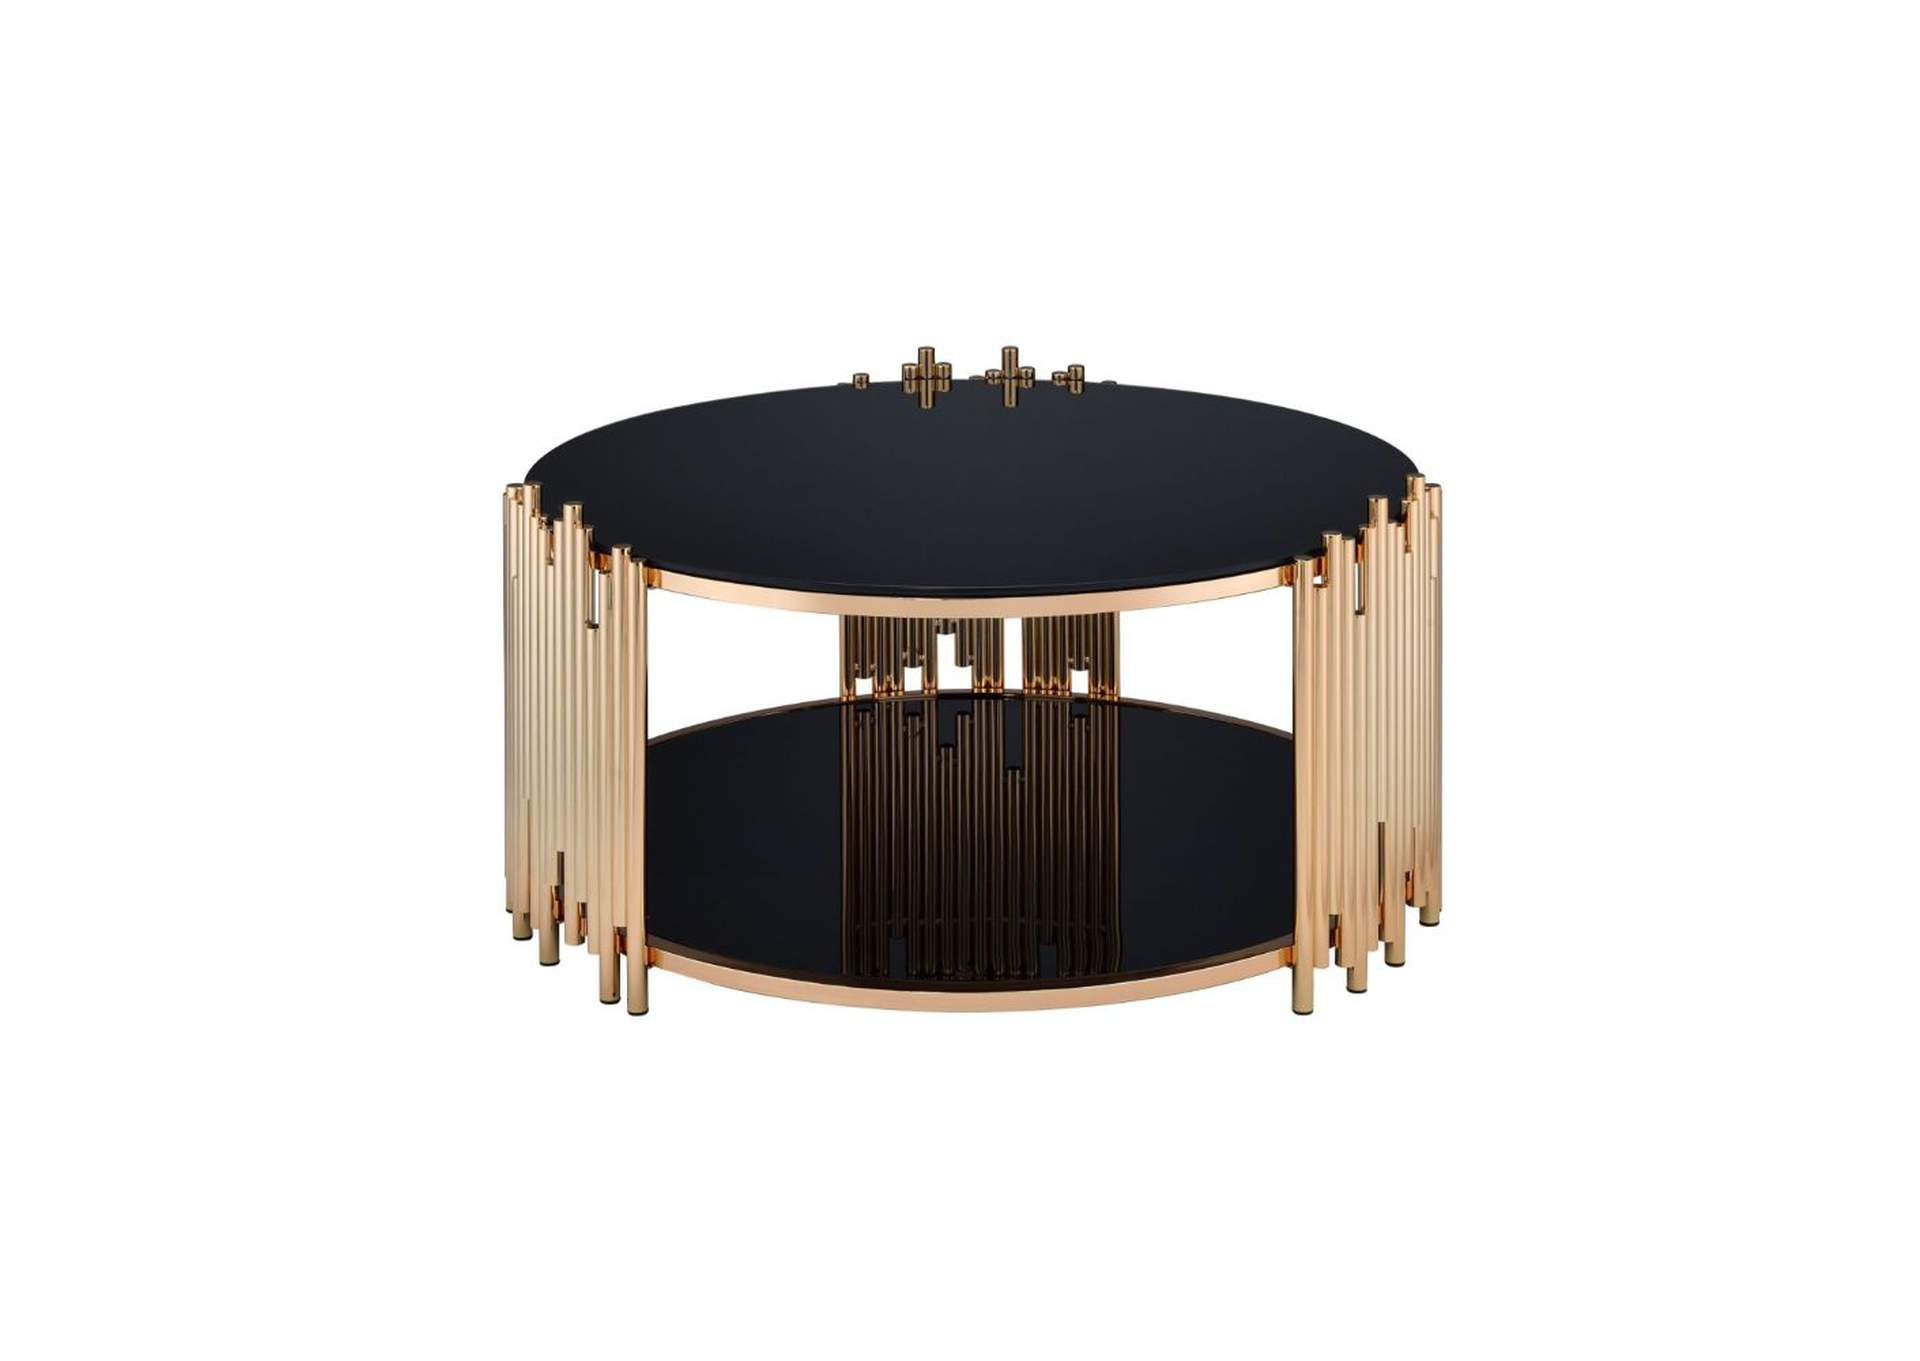 Tanquin Gold & Black Glass Coffee Table,Acme